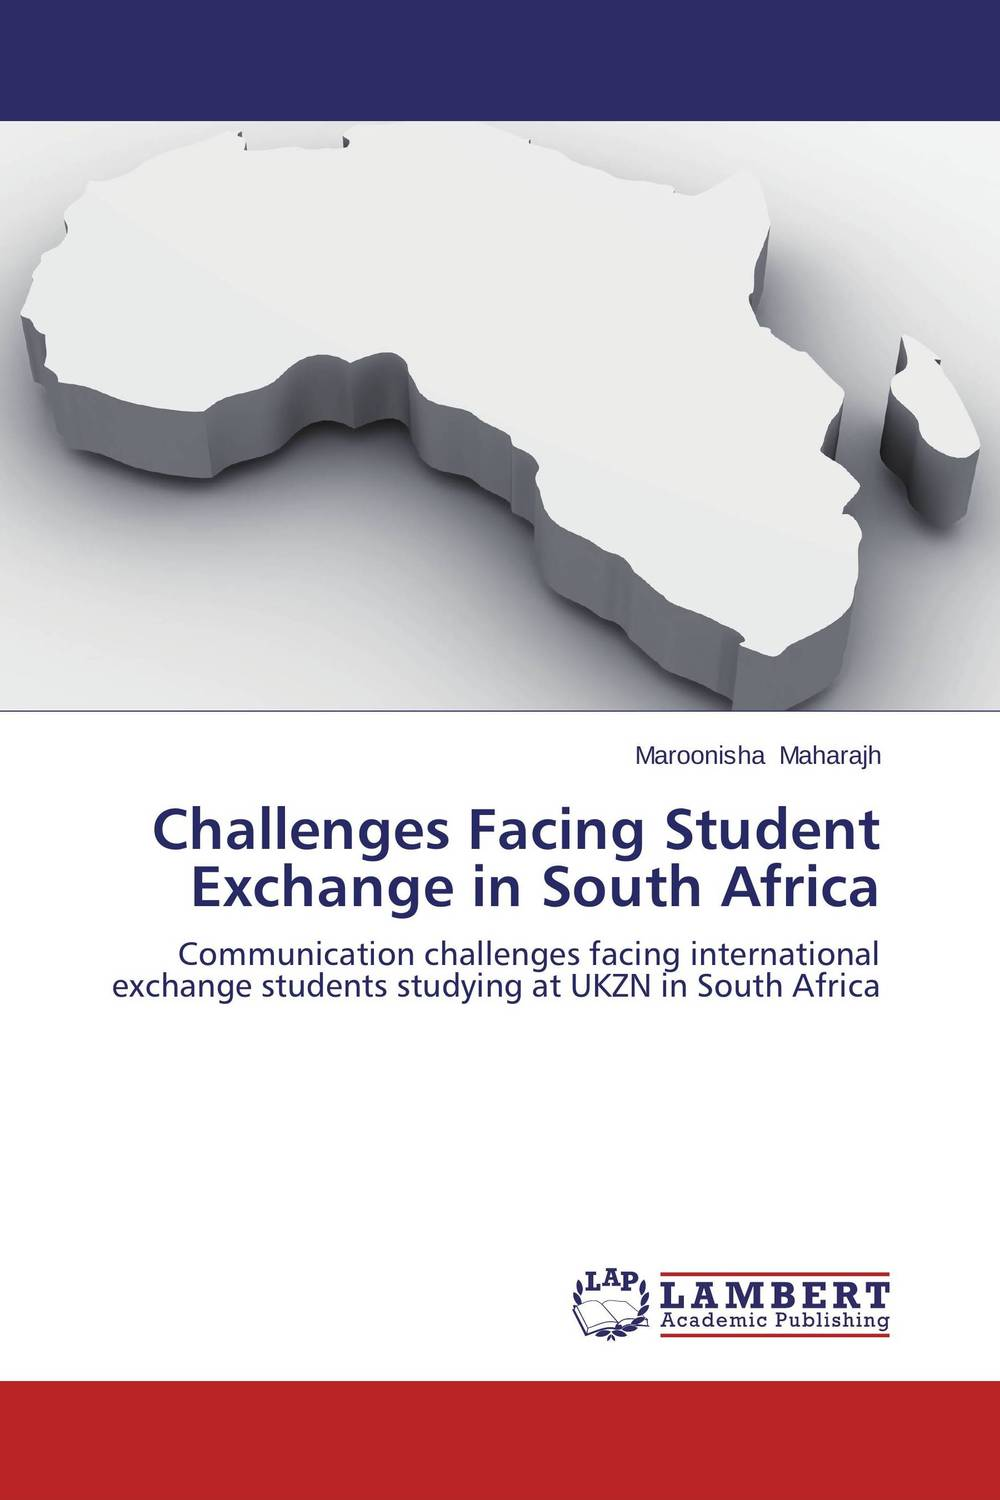 Challenges Facing Student Exchange in South Africa fundamentals of physics extended 9th edition international student version with wileyplus set